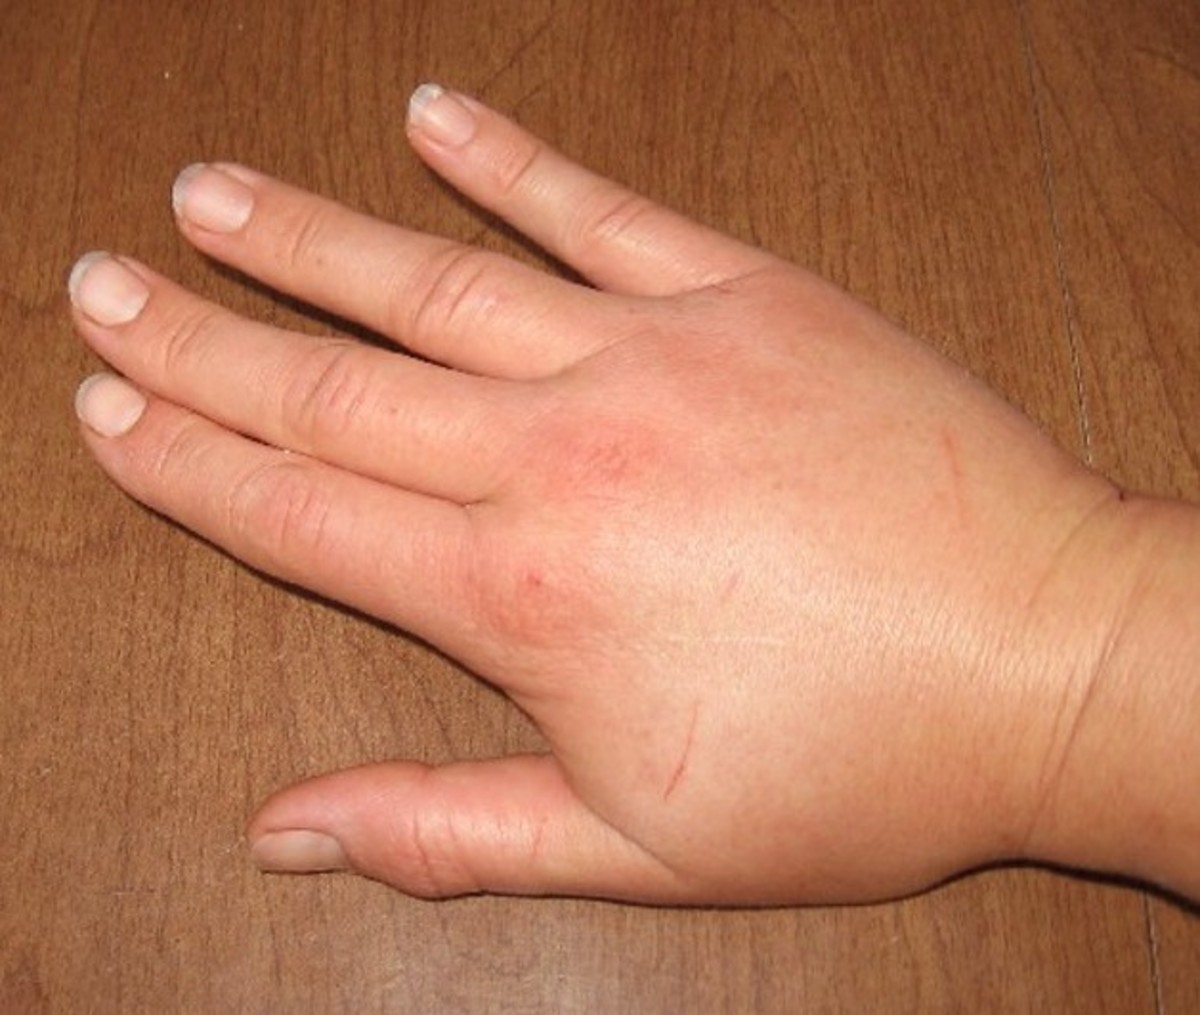 Wasp Sting - Pictures, Symptoms, Causes, Treatment